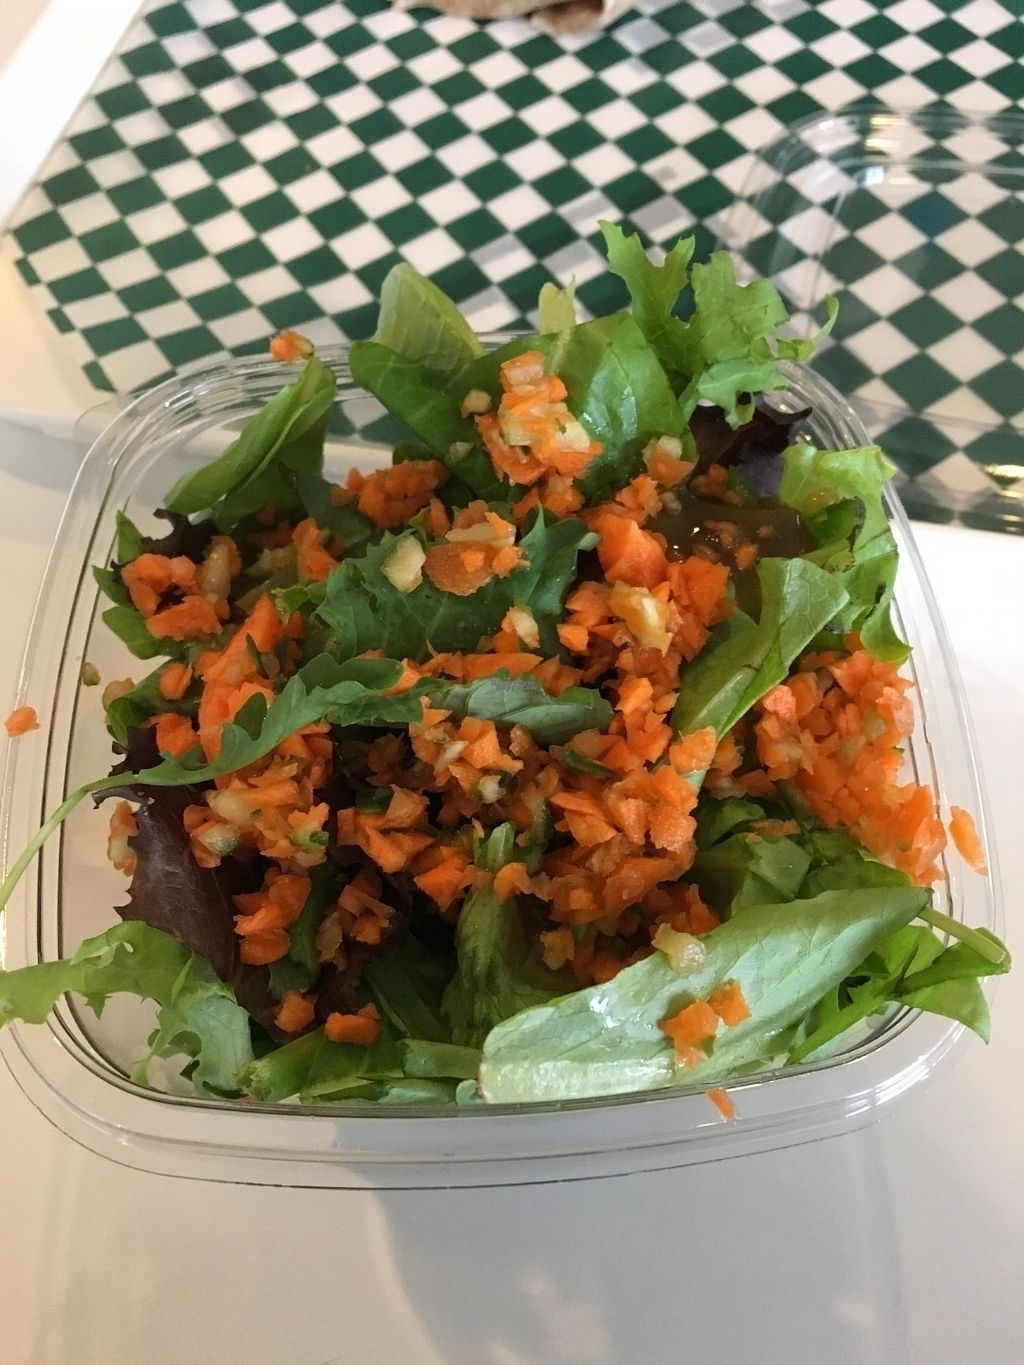 """Photo of CLOSED: Gojigo  by <a href=""""/members/profile/vegan%20frog"""">vegan frog</a> <br/>Salad <br/> October 22, 2016  - <a href='/contact/abuse/image/77074/183523'>Report</a>"""